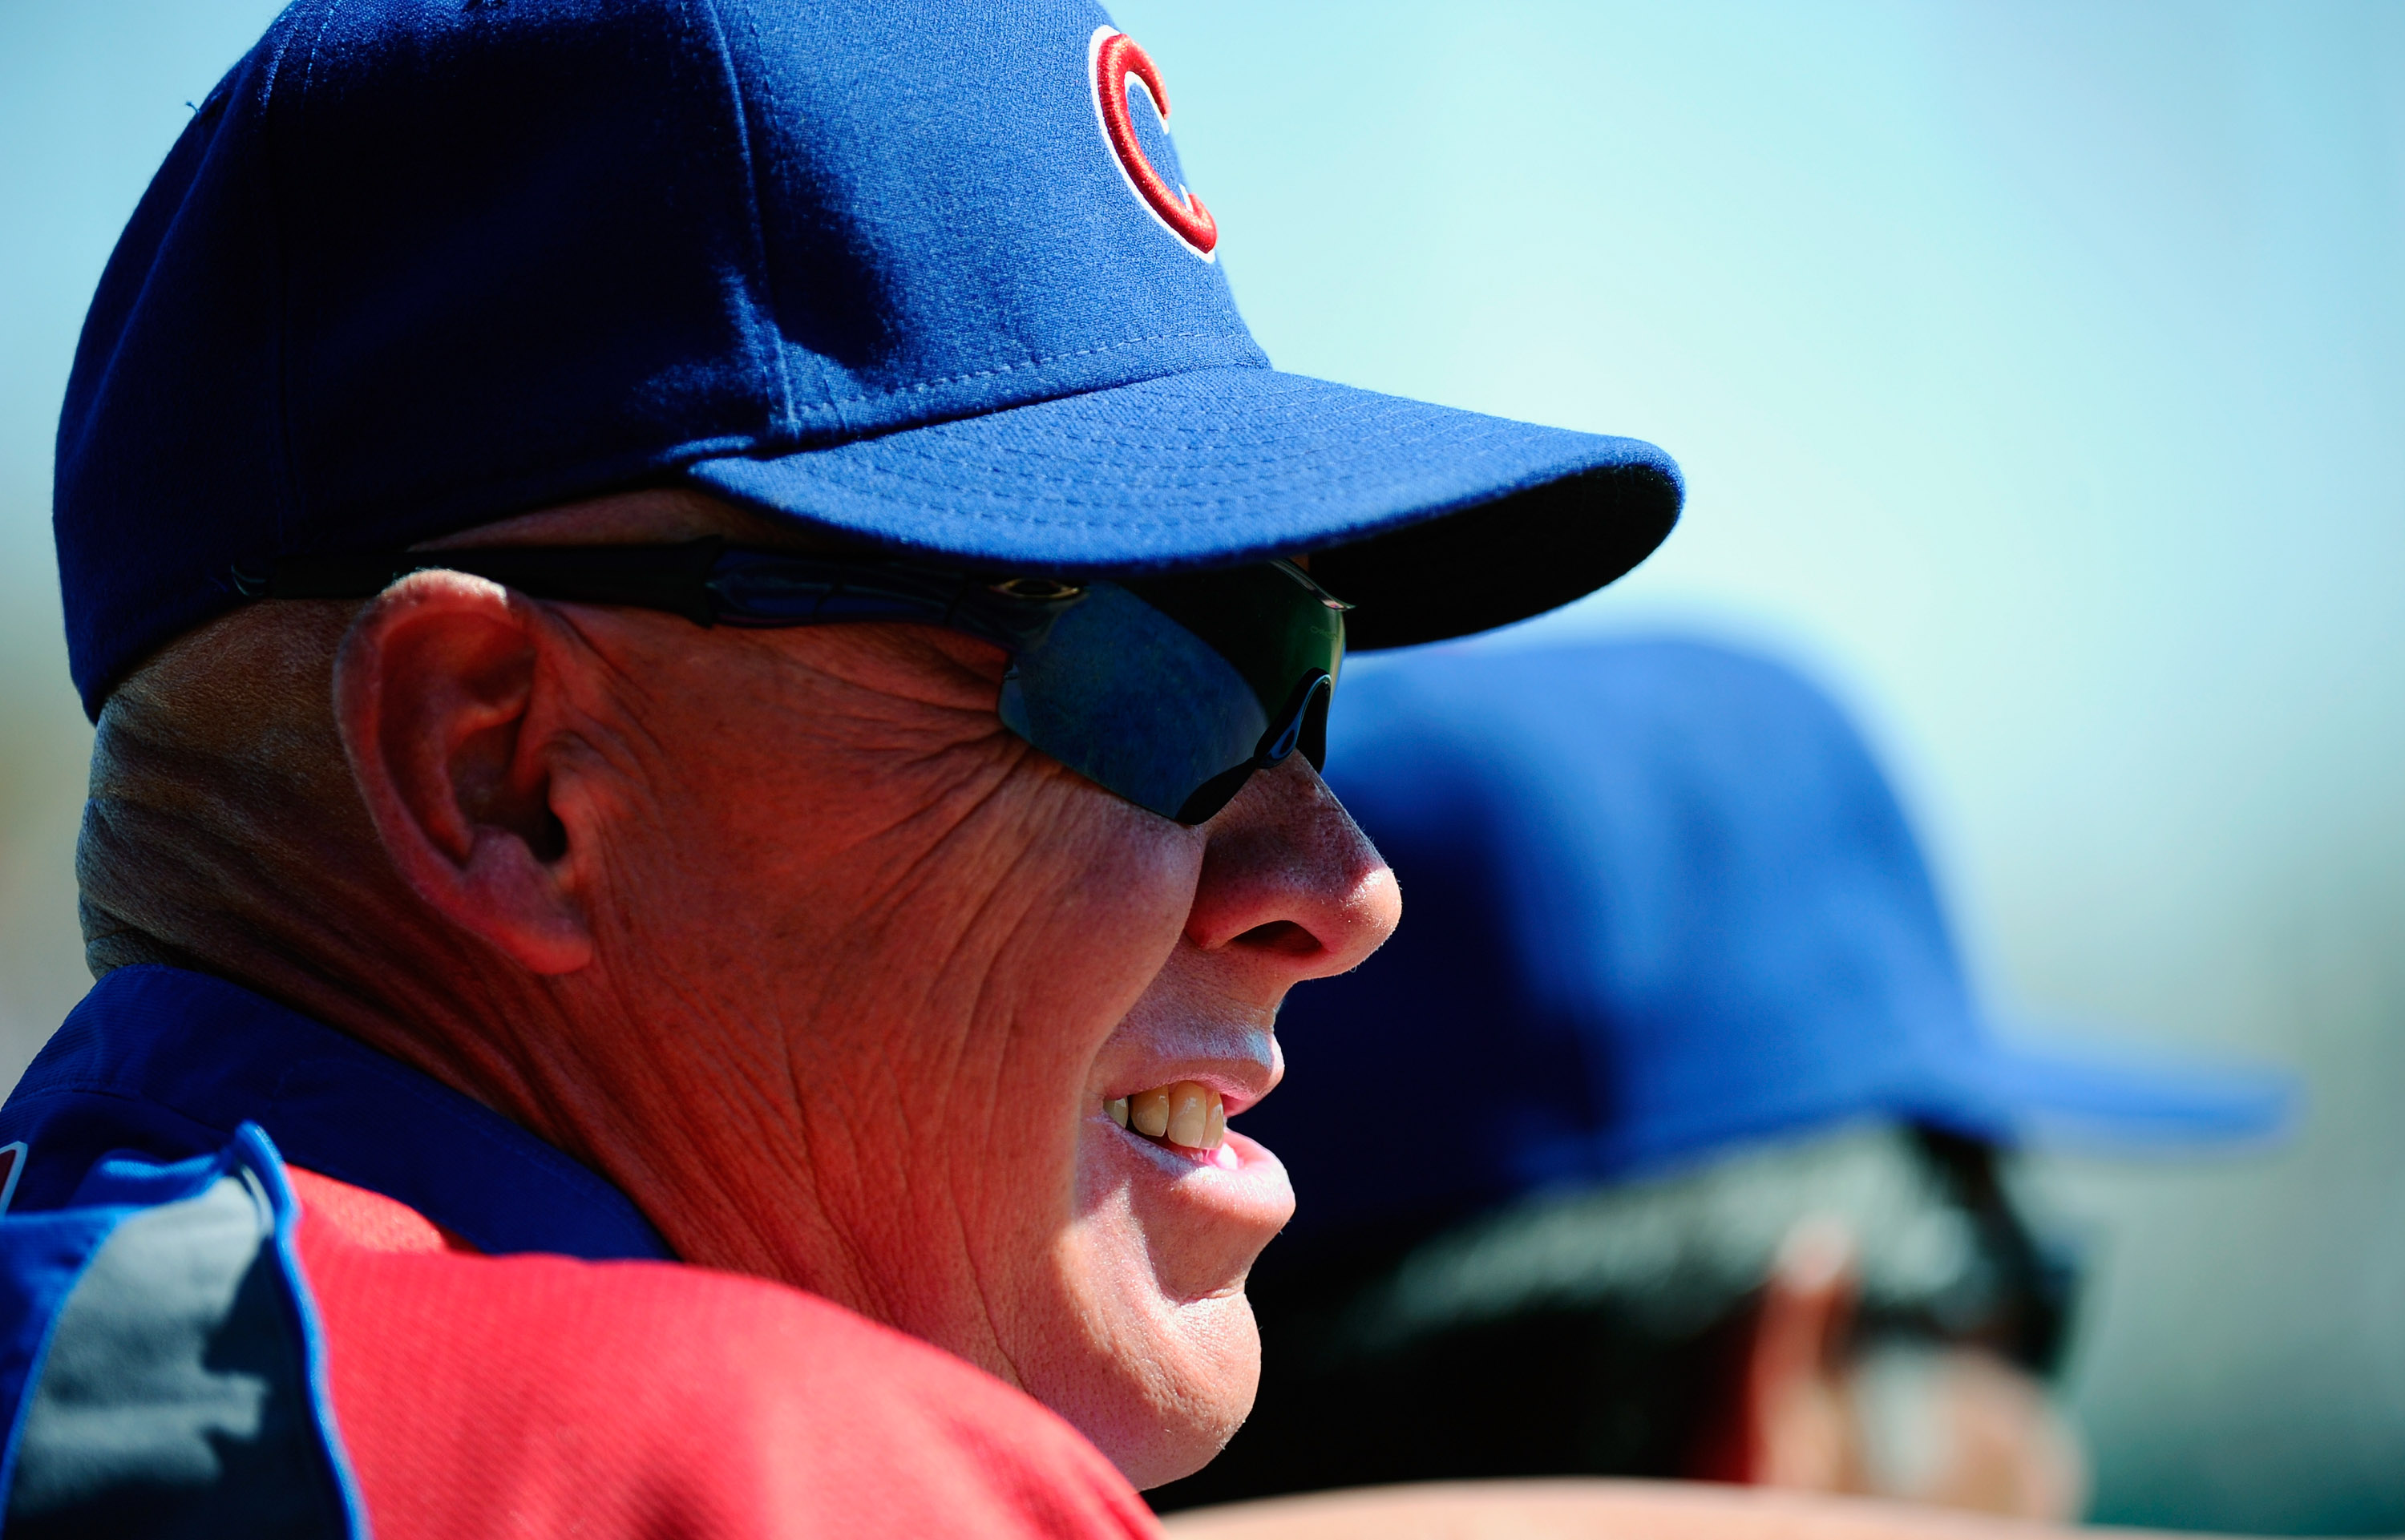 GLENDALE, AZ - MARCH 11:  Manager Mike Quade #8 Chicago Cubs during the spring training baseball game against  the Chicago White Sox at Camelback Ranch on March 11, 2011 in Glendale, Arizona.  (Photo by Kevork Djansezian/Getty Images)